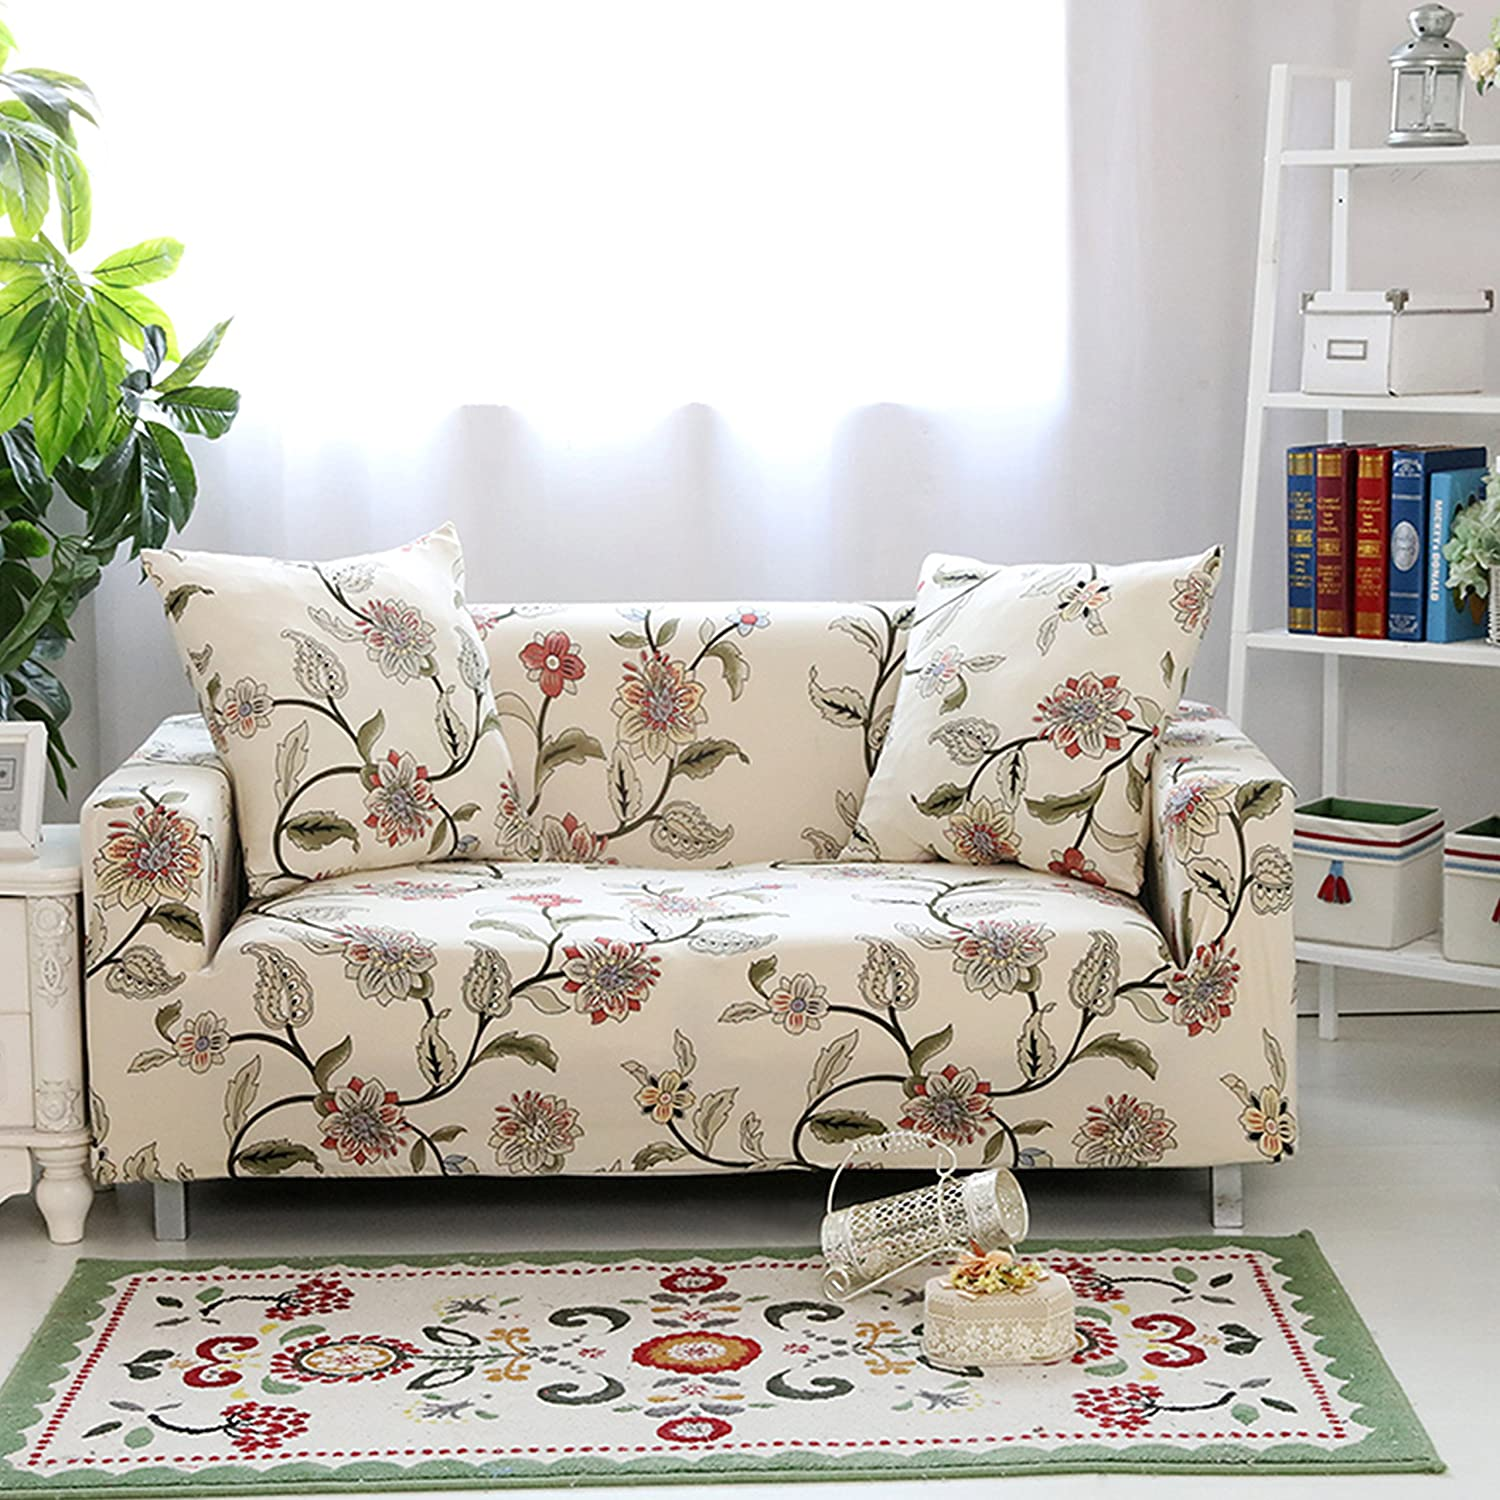 Phenomenal Lamberia Printed Sofa Cover Stretch Couch Cover Sofa Slipcovers For Couches And Loveseats With One Free Pillow Case Blooming Flower Loveseat Evergreenethics Interior Chair Design Evergreenethicsorg